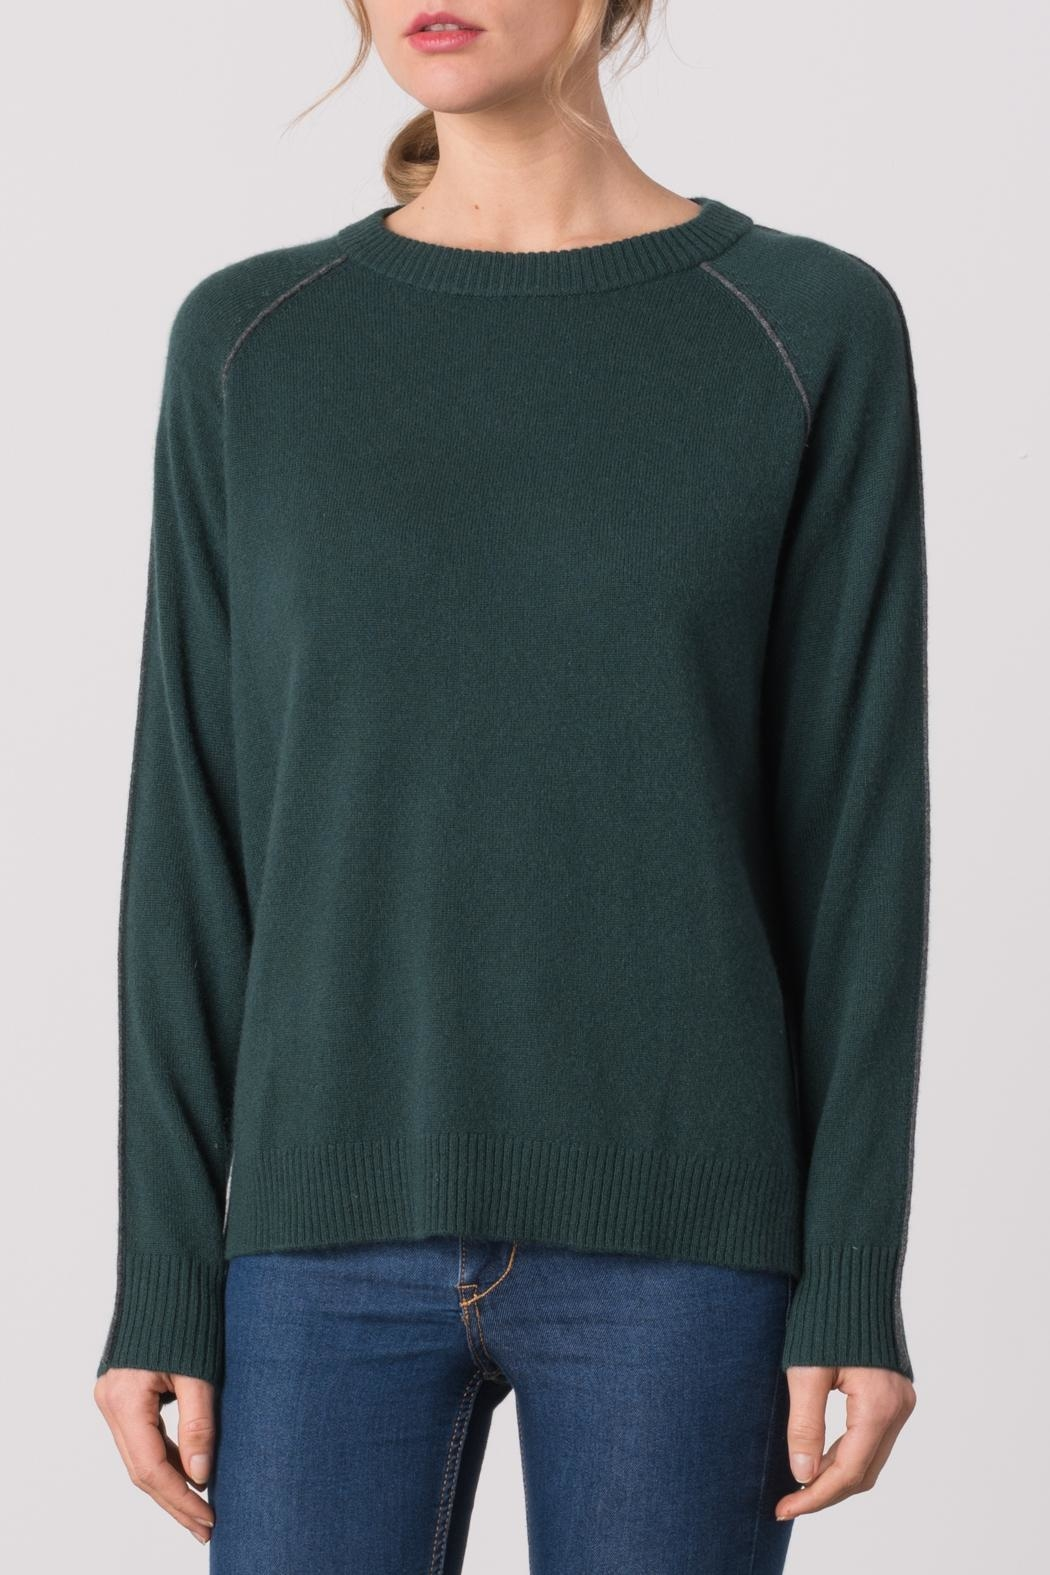 Margaret O'Leary Color Block Sweater - Front Cropped Image